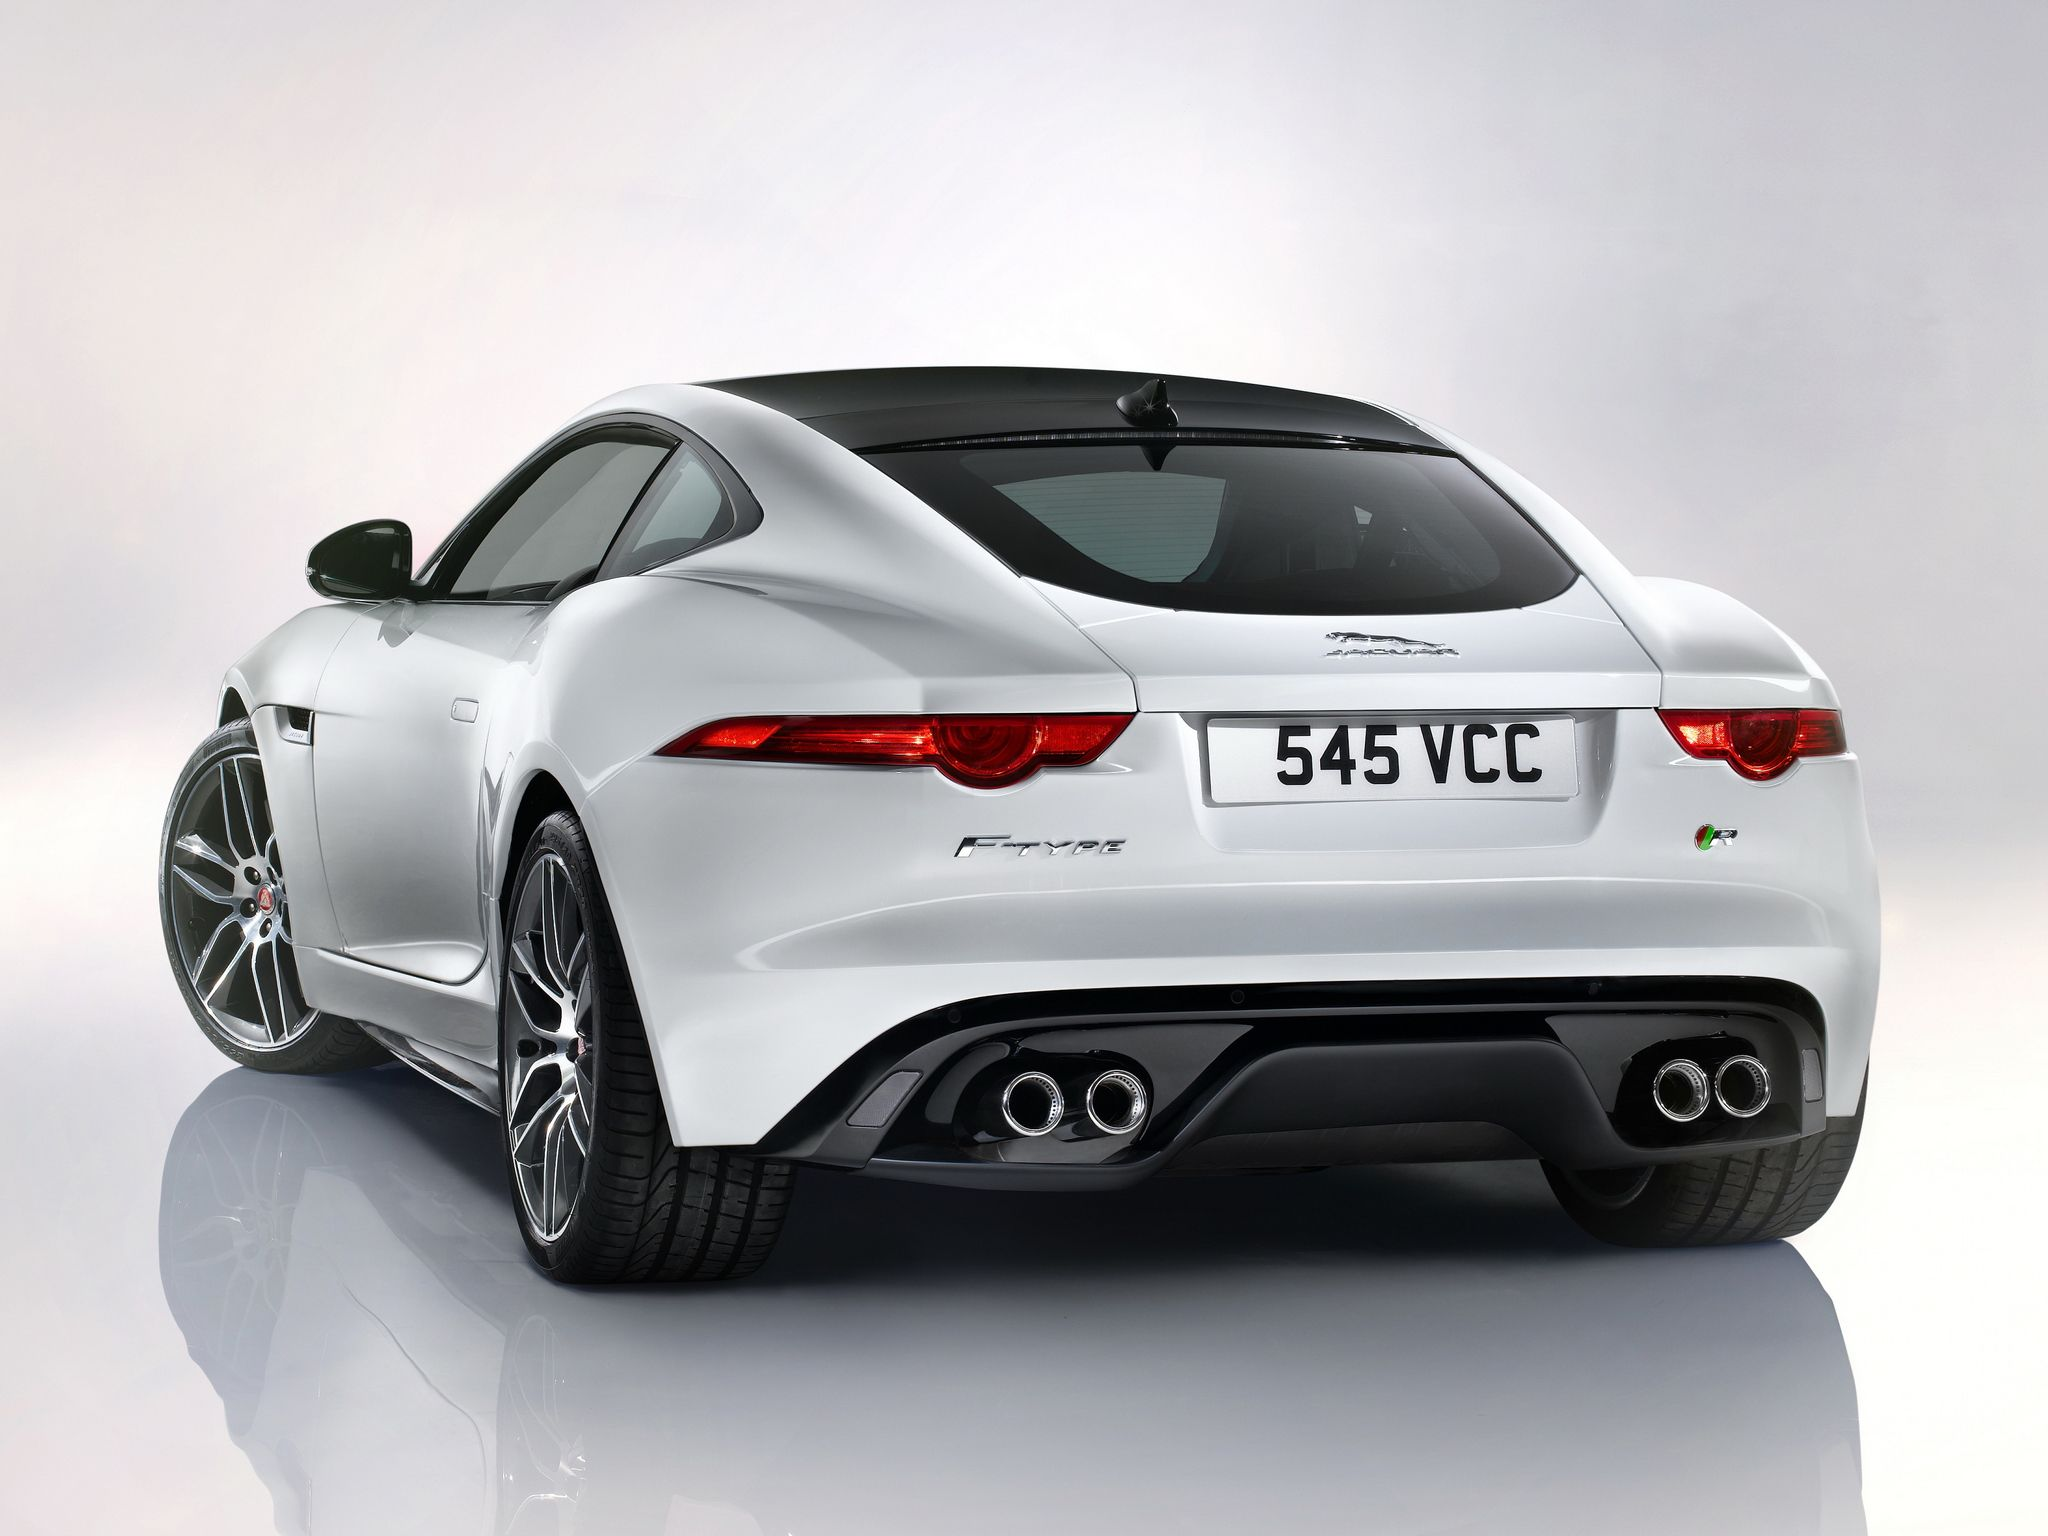 f type in coeur bl lease sale jaguar creve new mo for htm